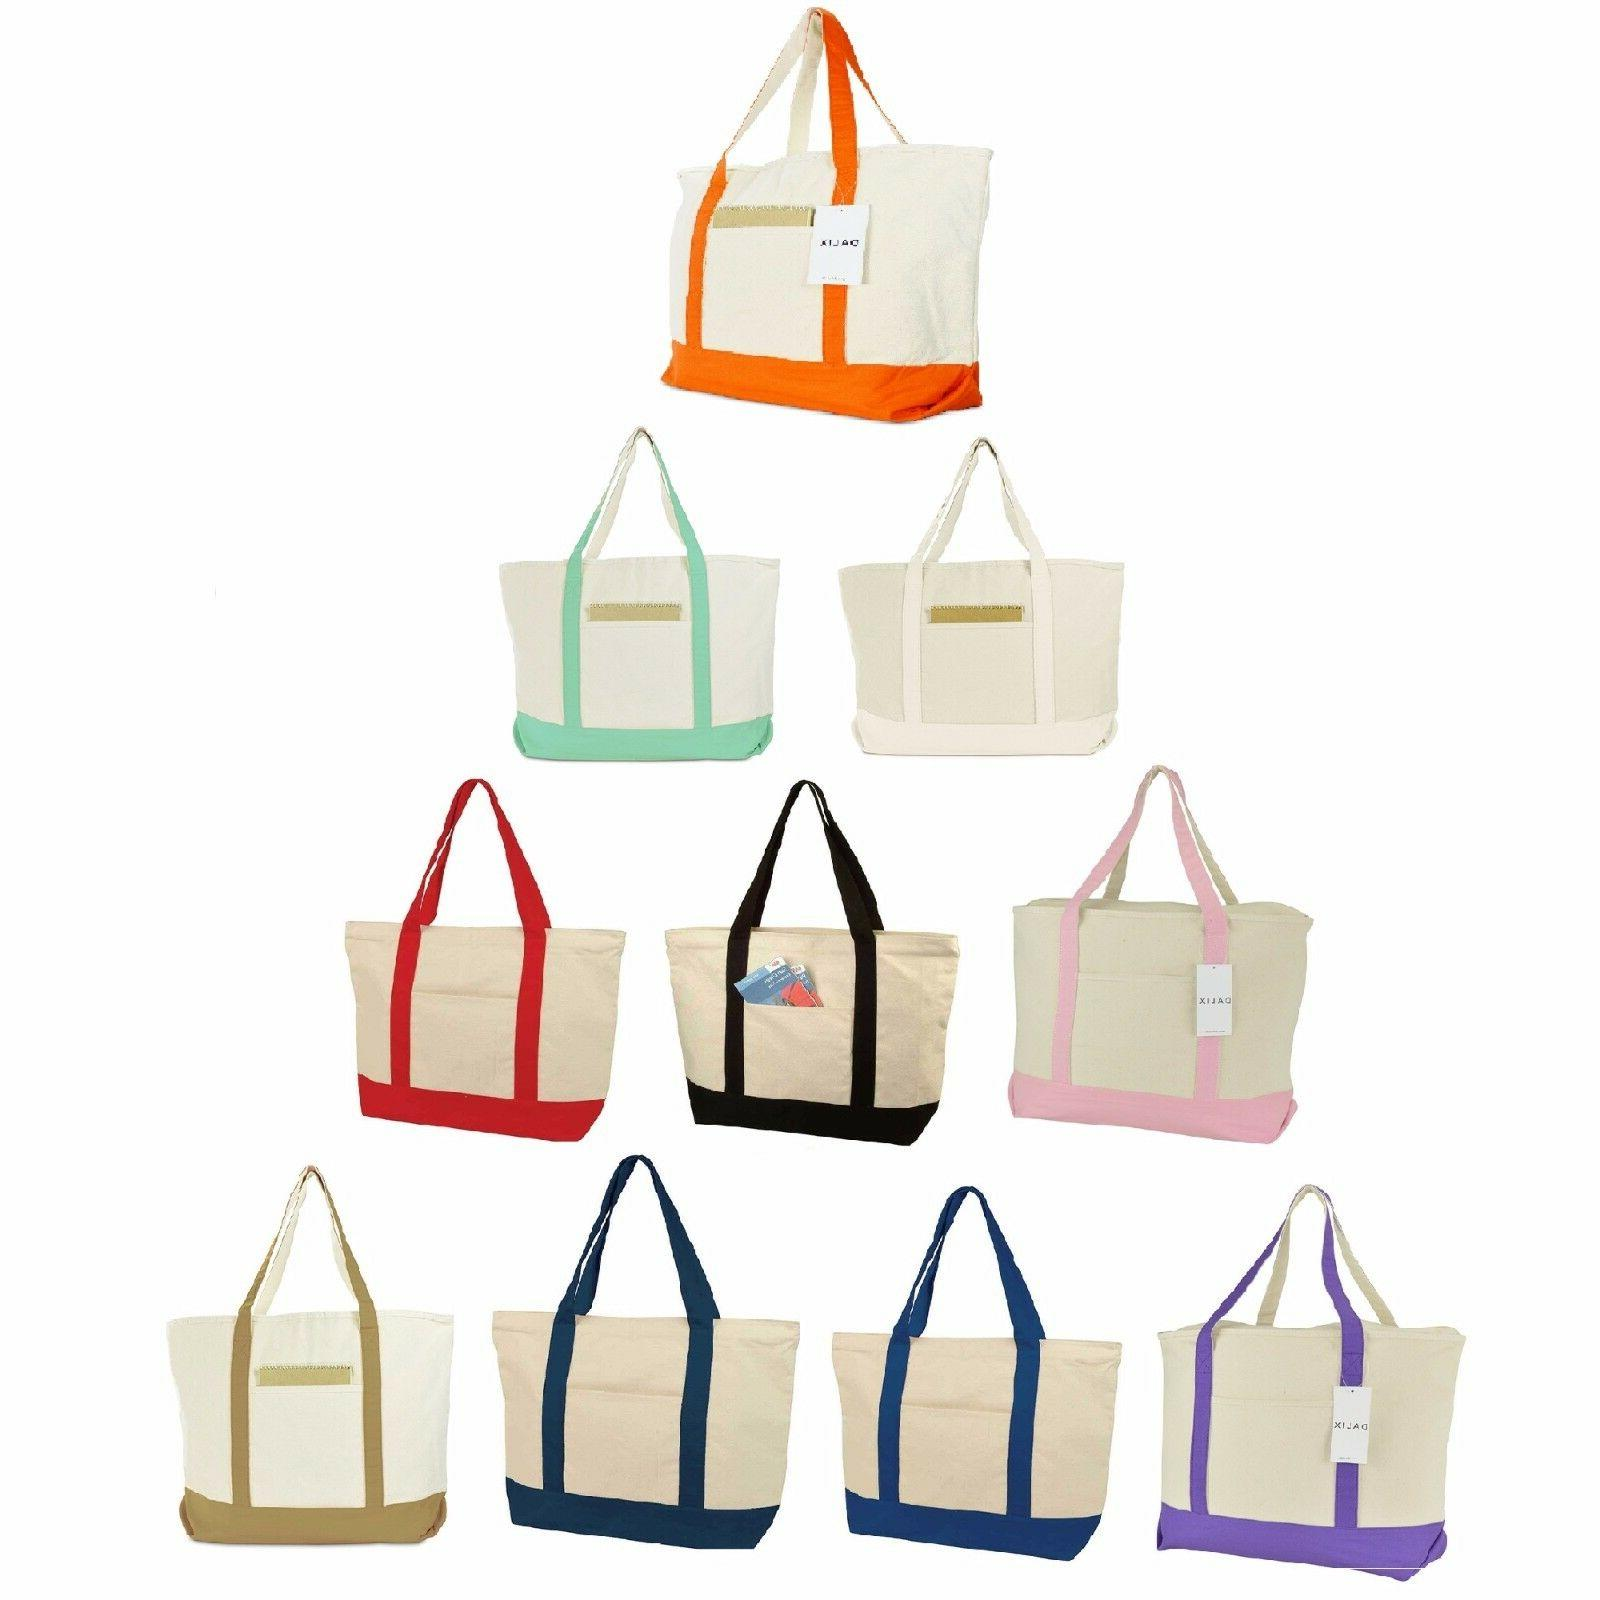 22 large cotton canvas zippered shopping tote